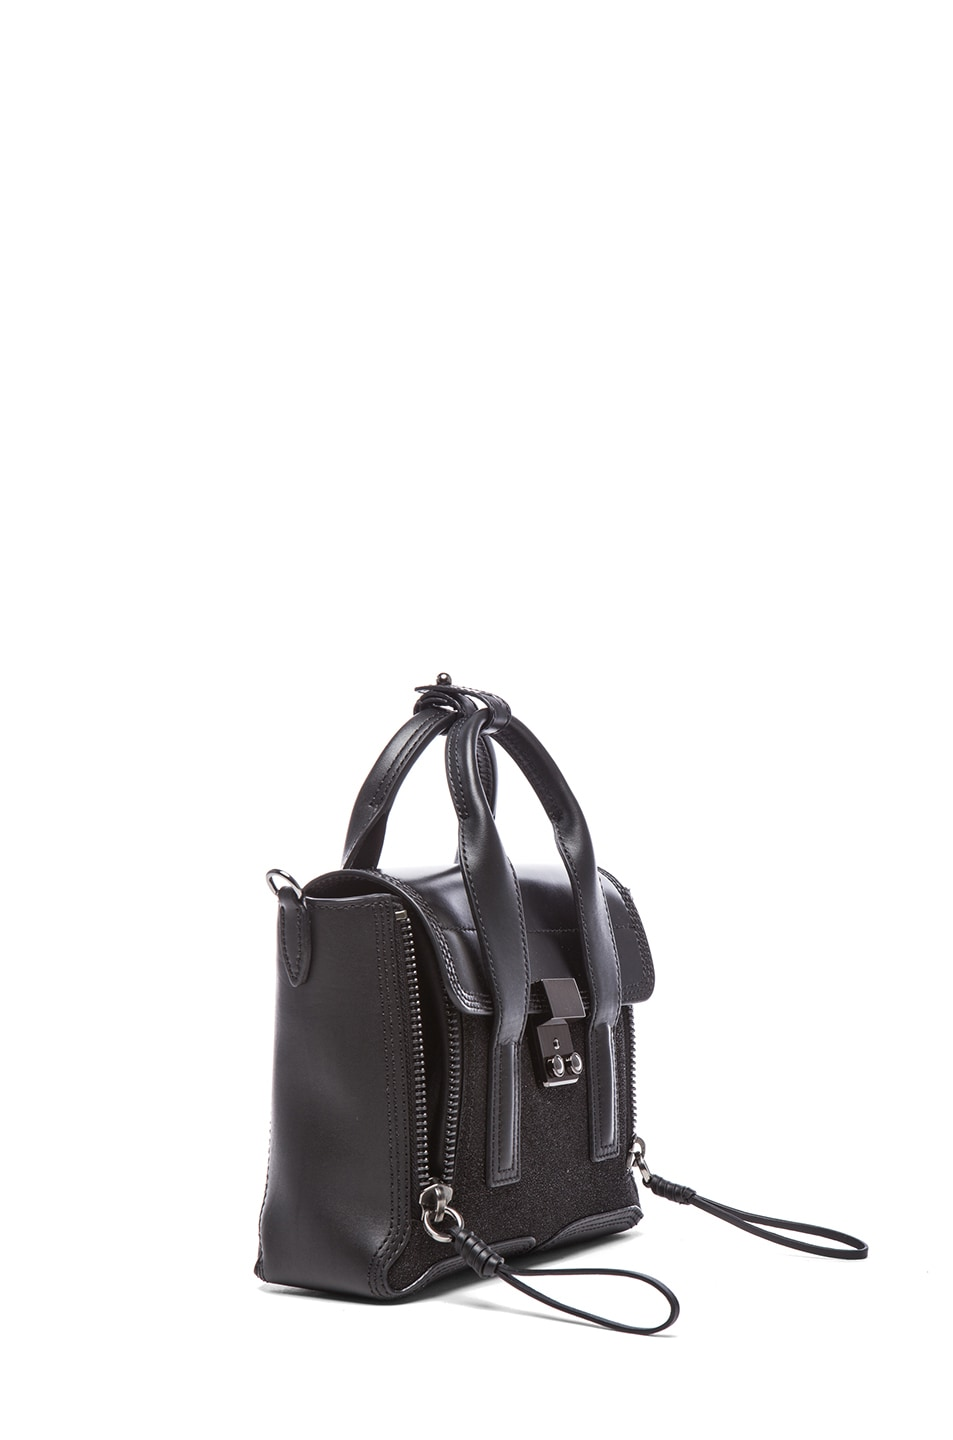 Image 3 of 3.1 phillip lim Mini Pashli Satchel in Gunmetal Black